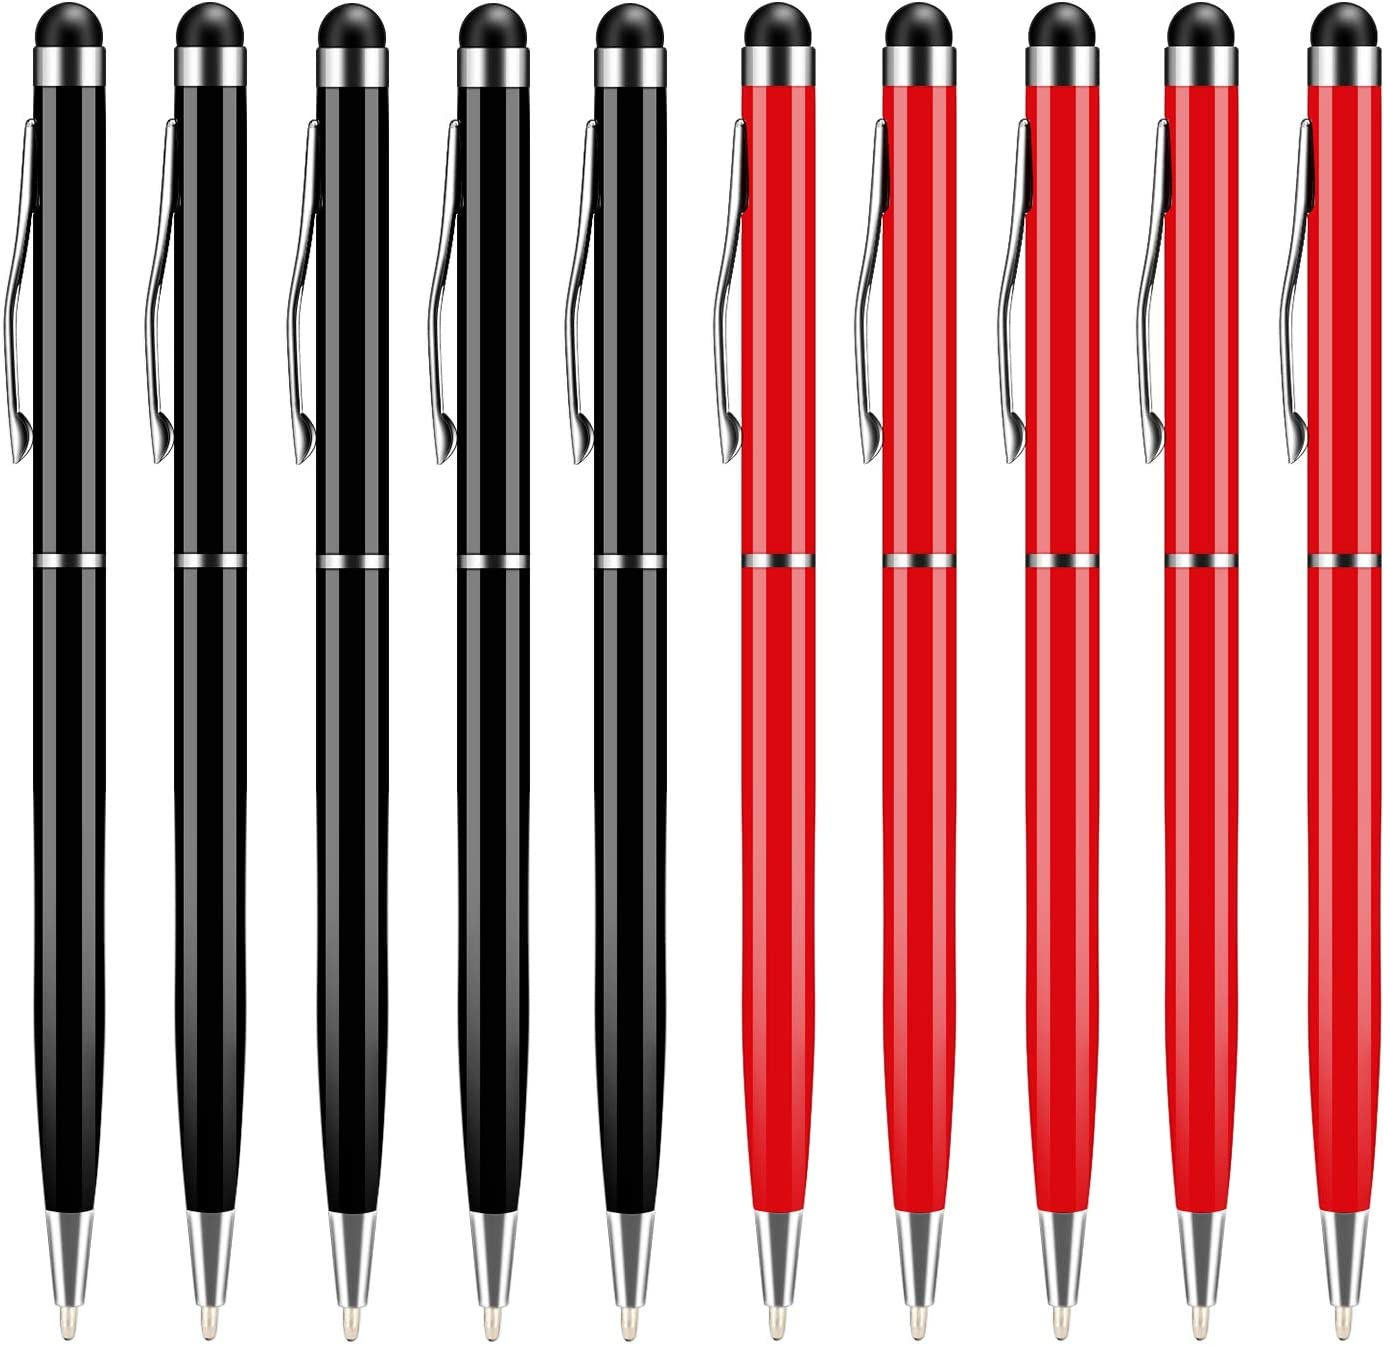 UROPHYLLA Universal 2 in 1 Capacitive Stylus Ballpoint Pens for Touch Screens Fine Point - Bundle(10 Balck 5 Silver 5 red)